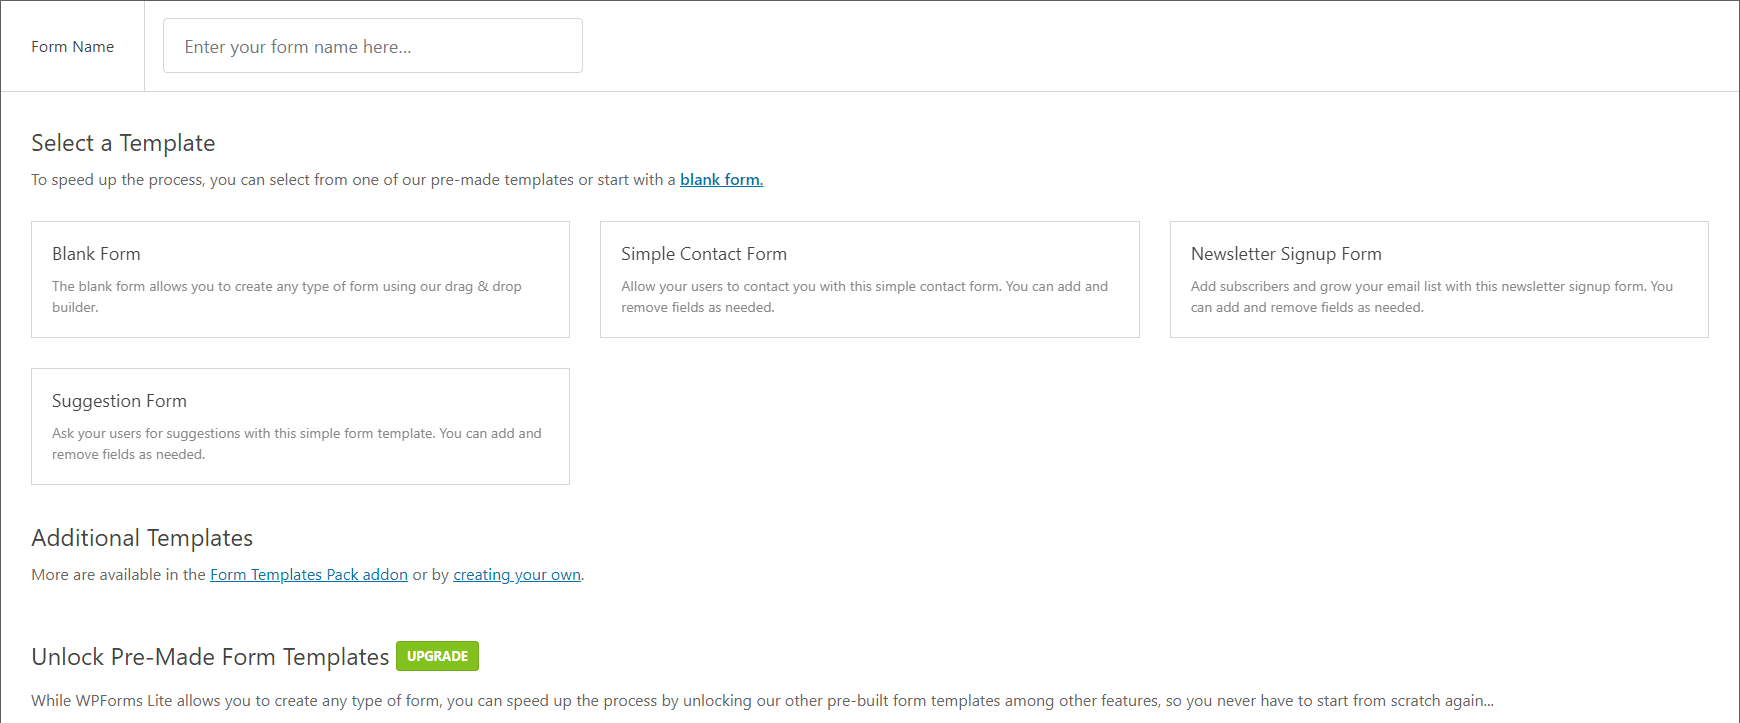 Form templates in WPForms.